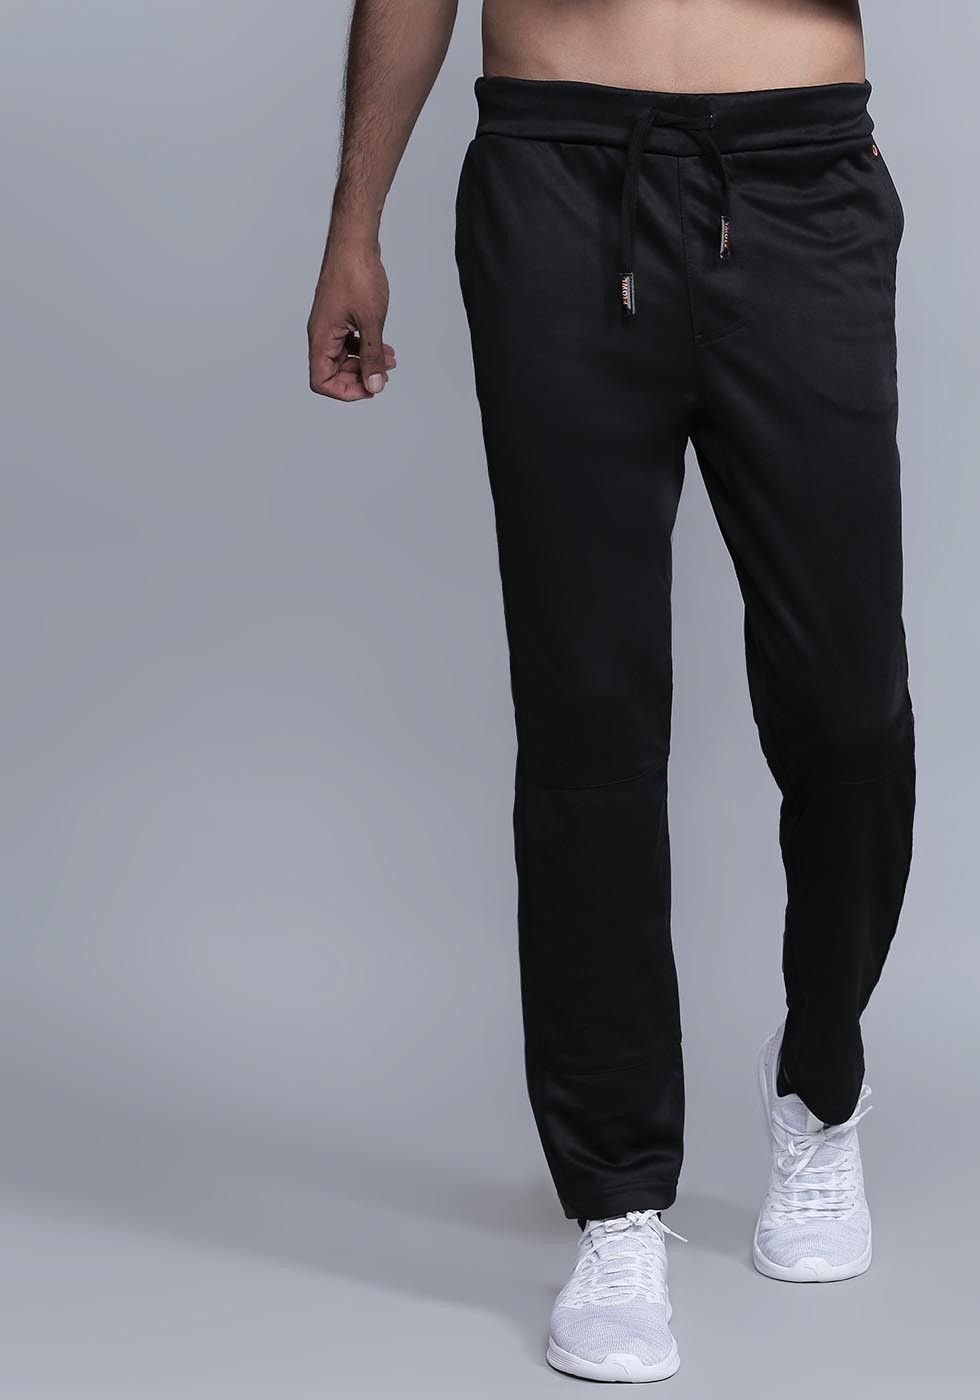 9da94abf84ede ALL DAY CROSSOVER ACTIVEWEAR JOGGERS BY PROWL ₹1,999.00 ...